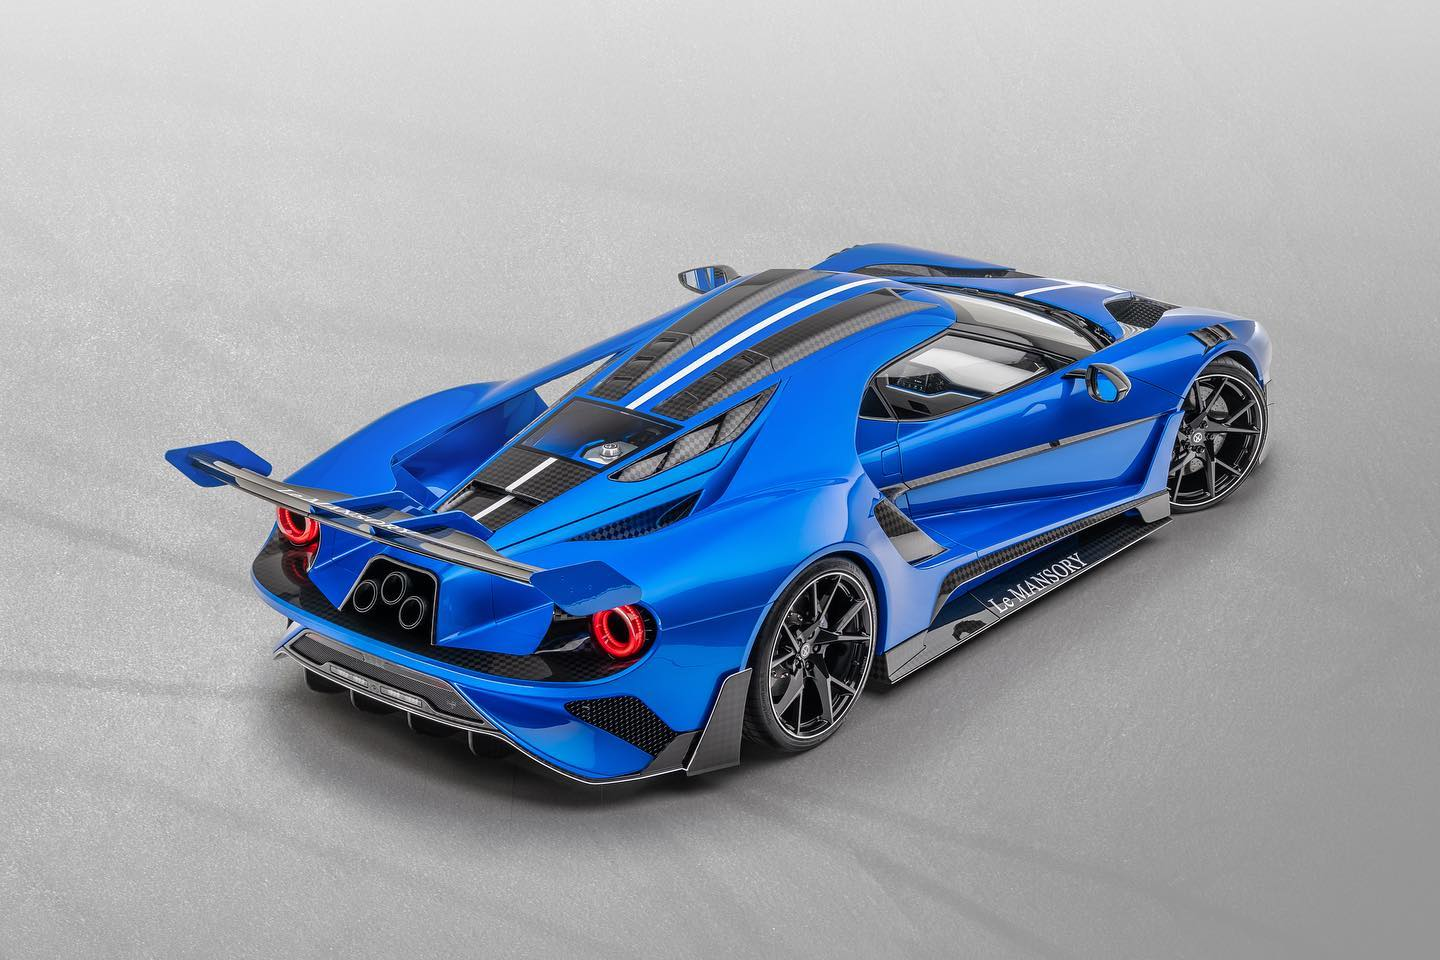 Ford-GT-by-Mansory-Le-Mansory-4